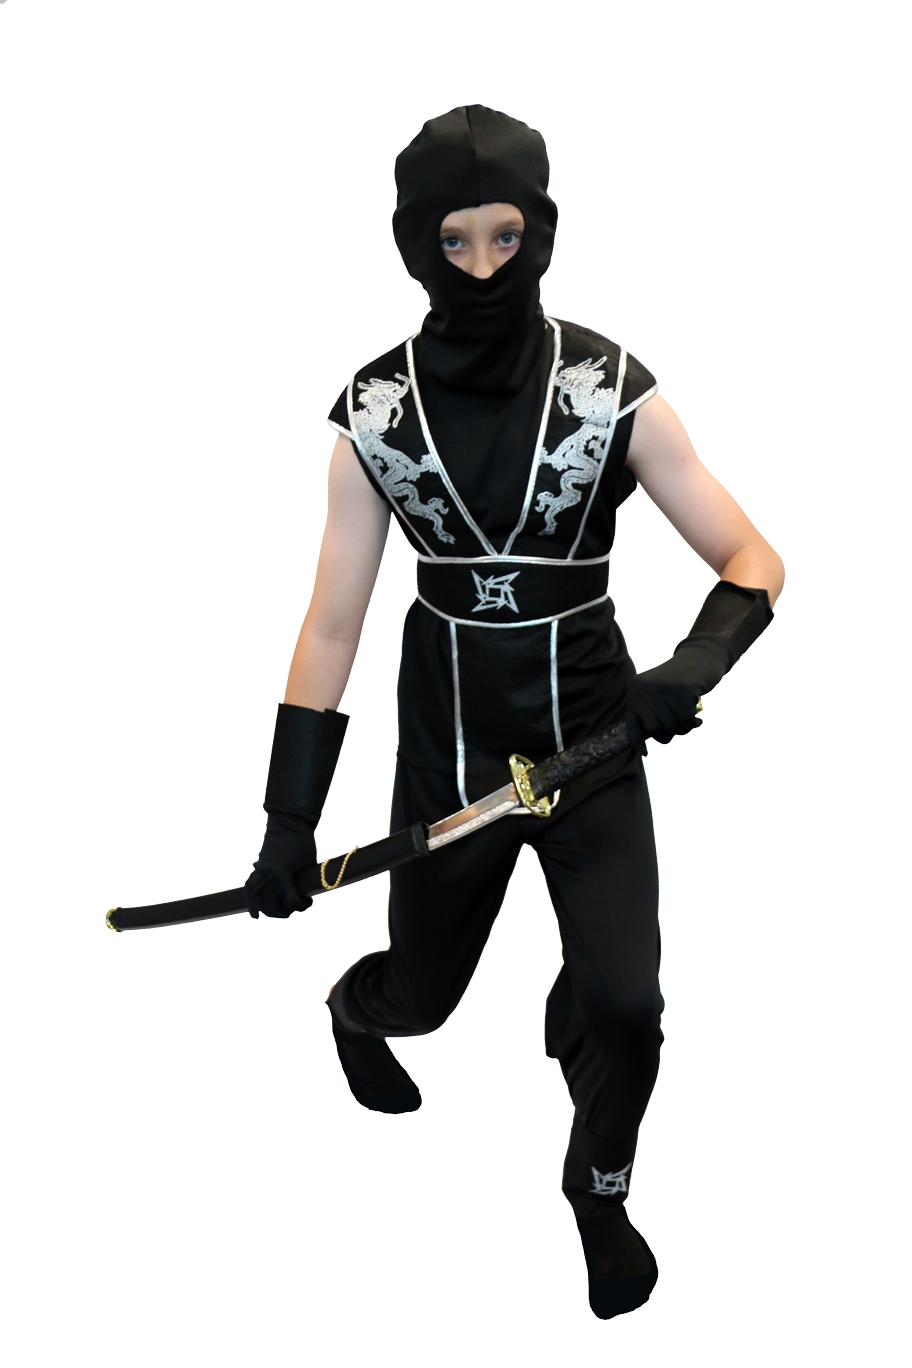 Ninja Tween Costume - Buy